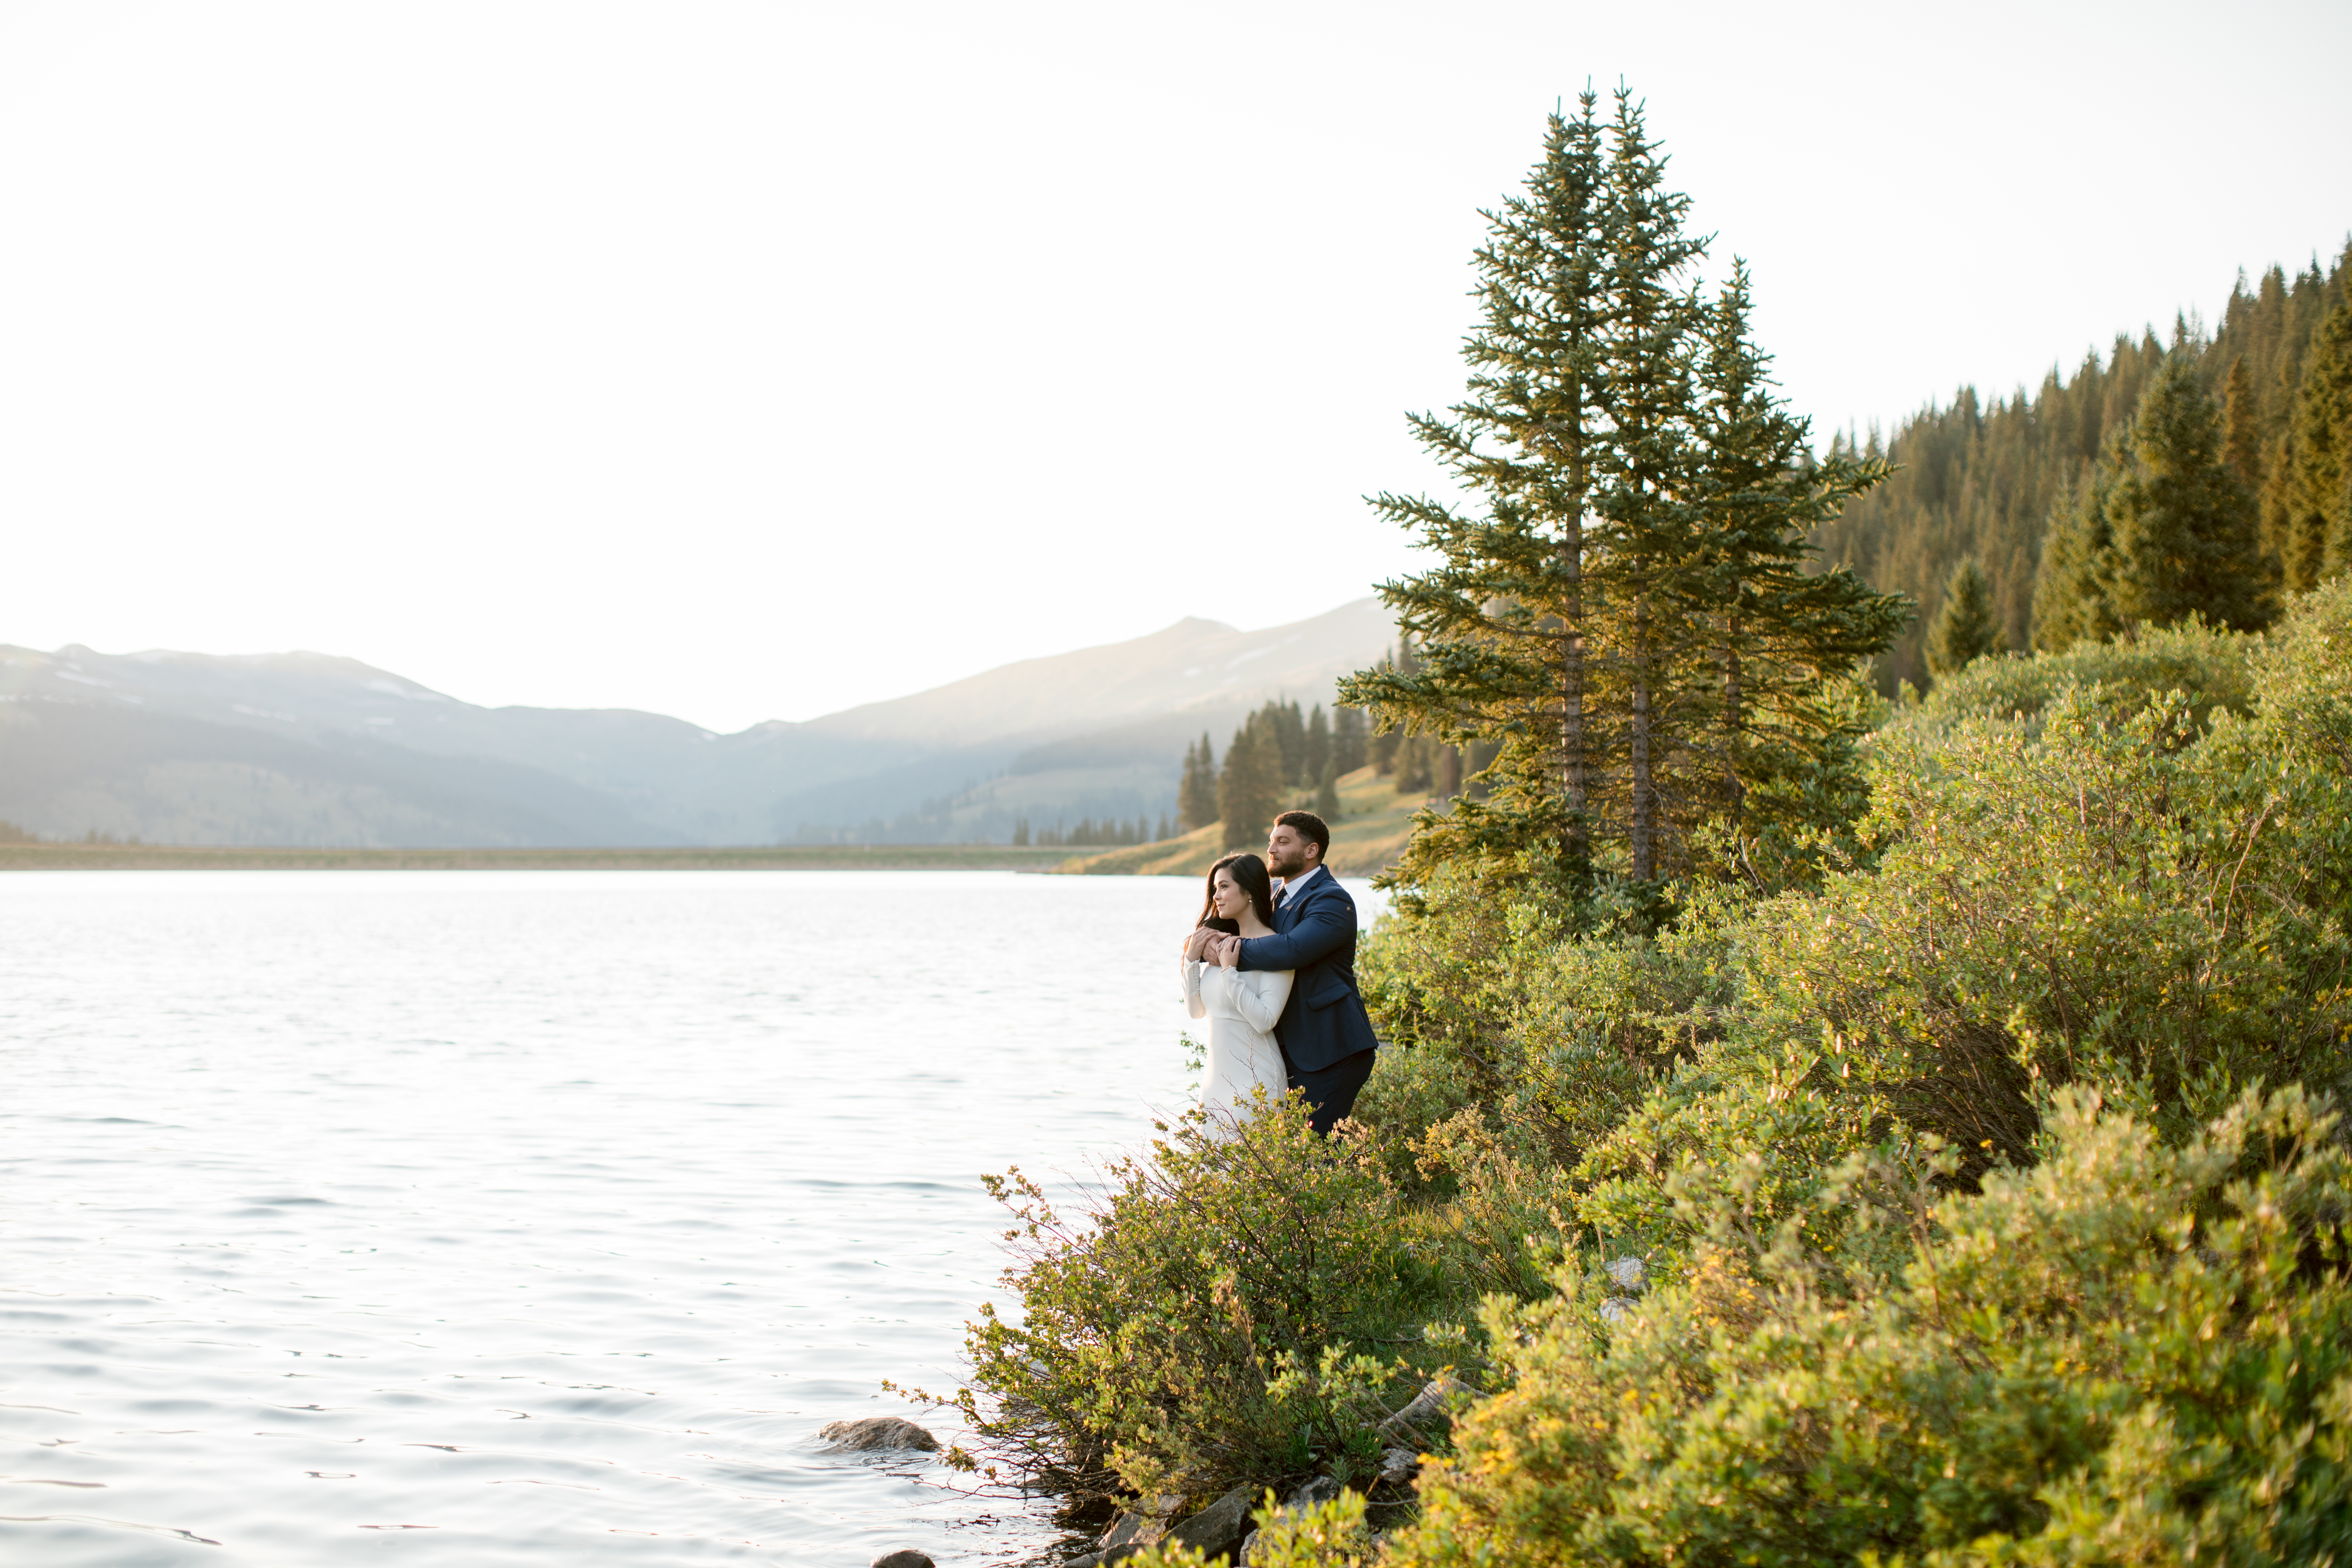 Clinton-Gulch-Reservoir-Leadville-Colorado-Elopement-Bride-and-Groom-Mountain-and-Lake